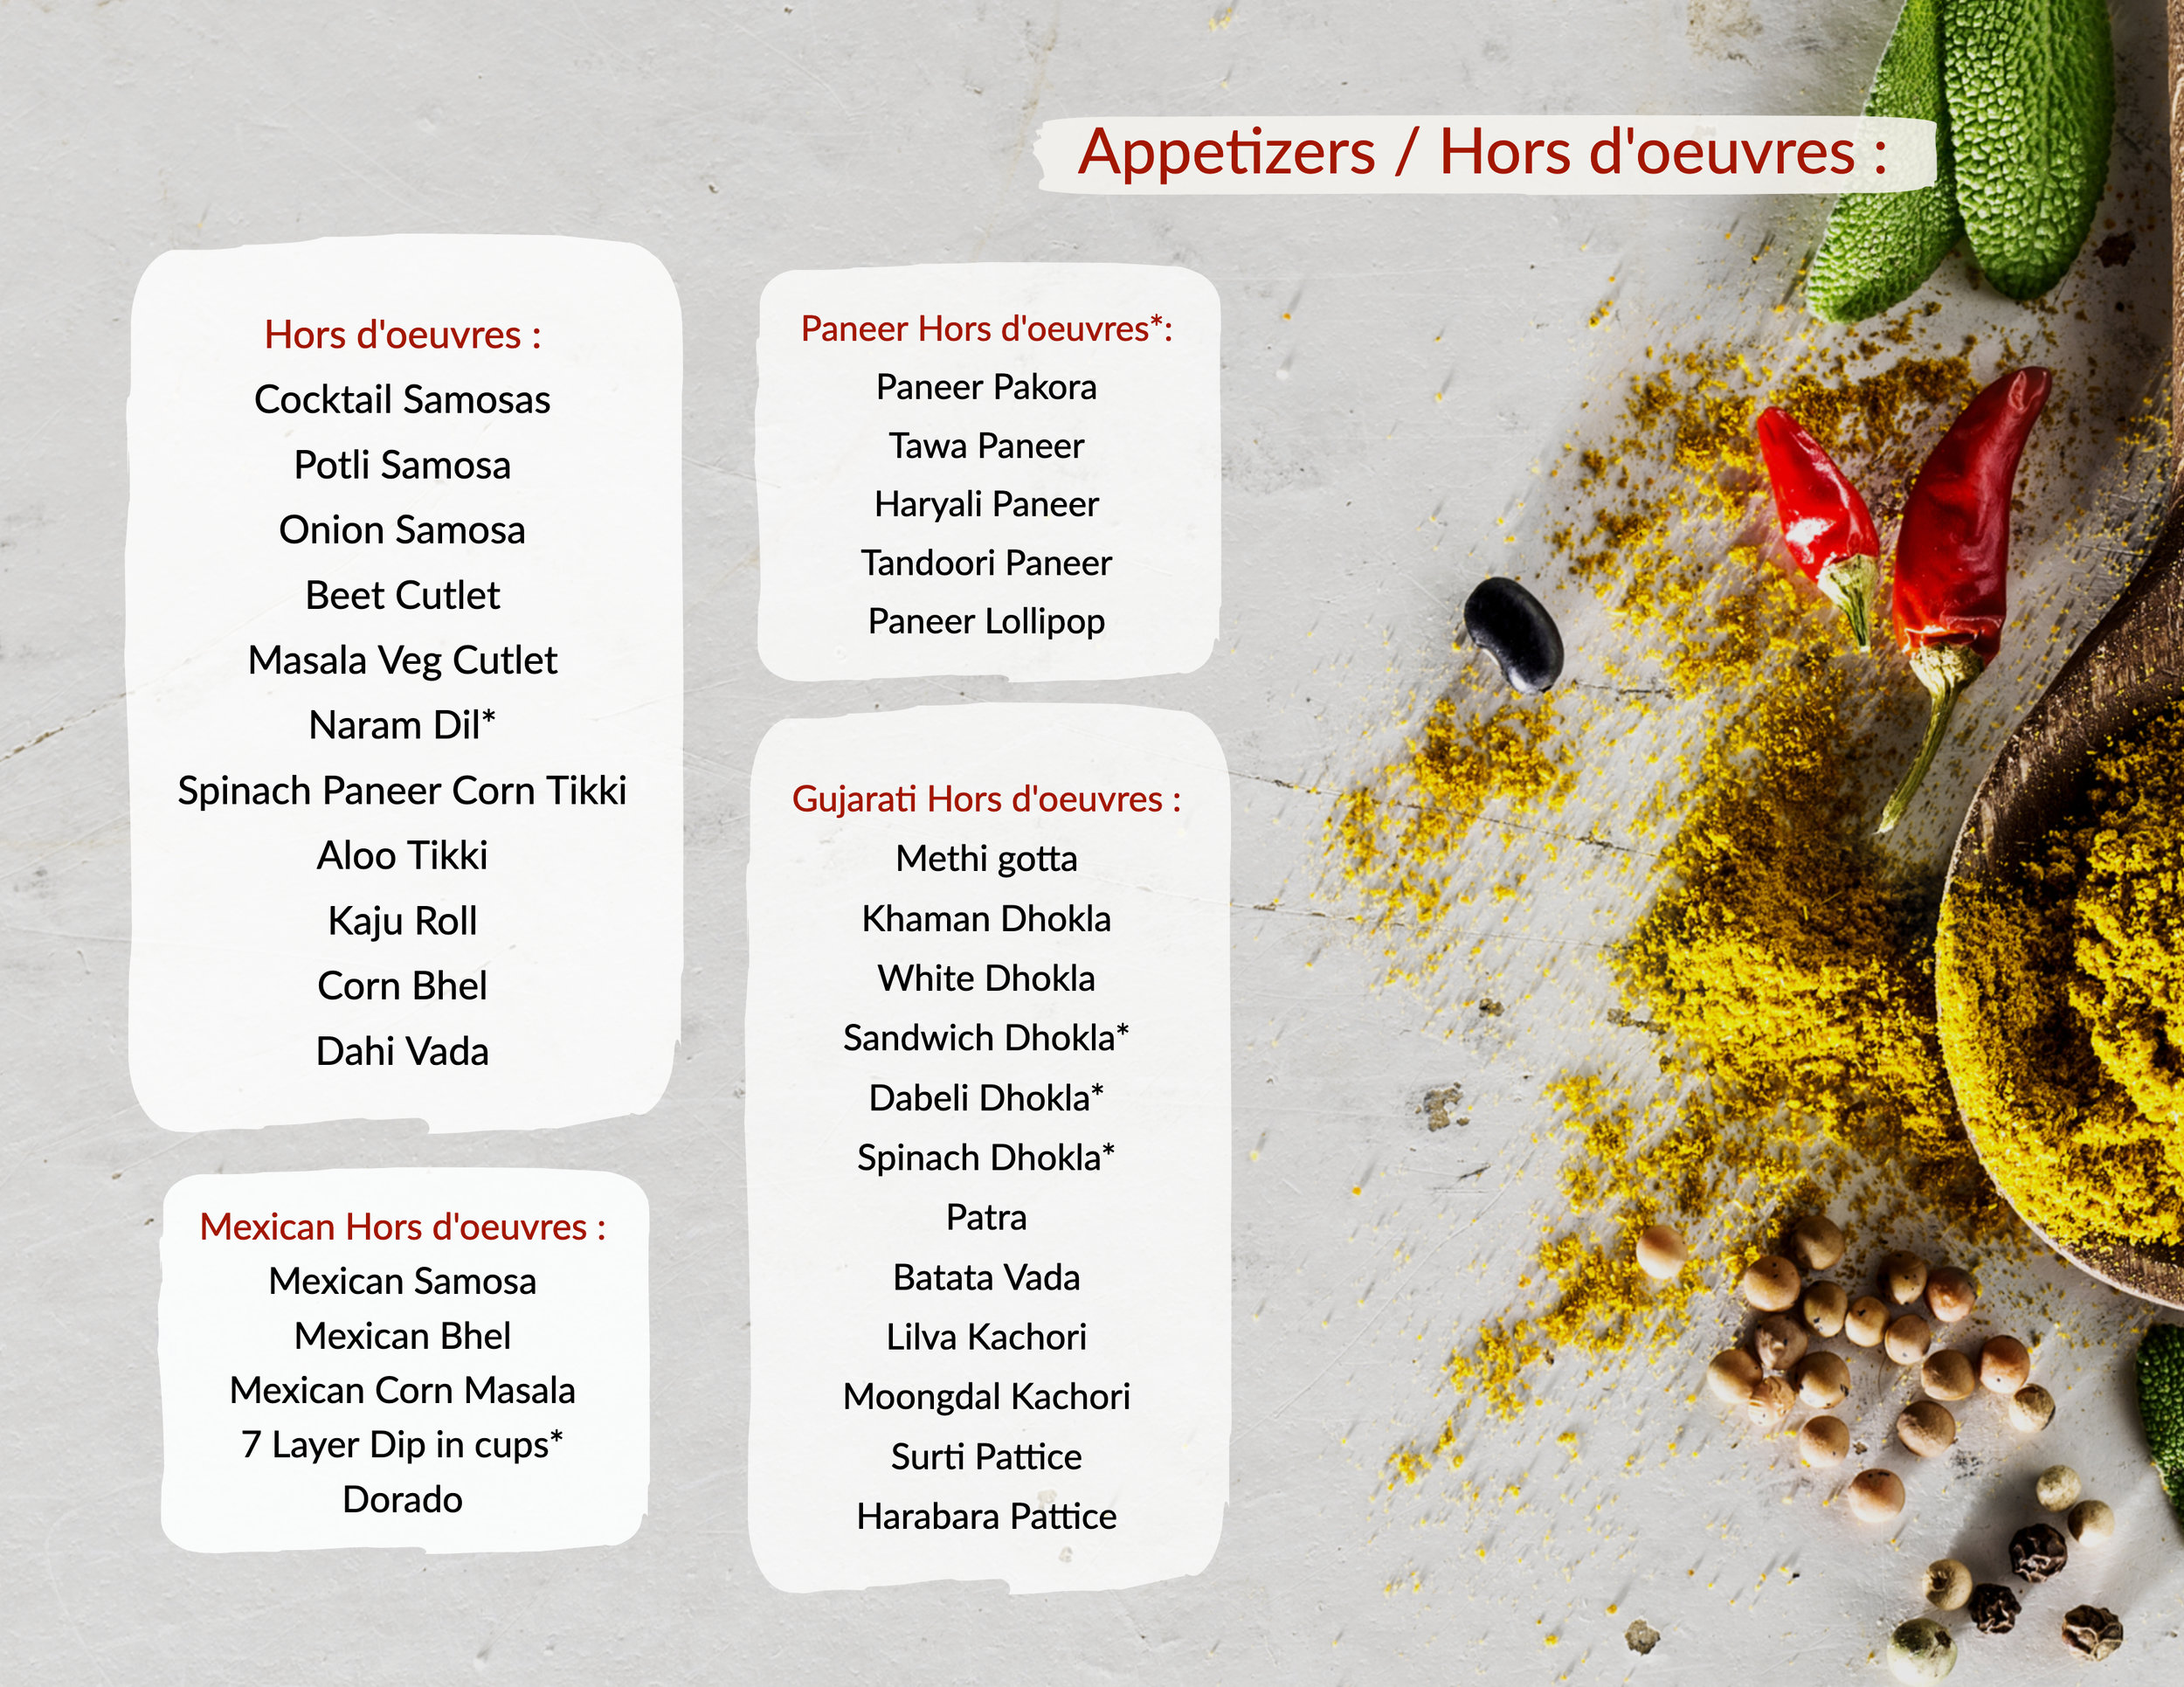 hors d'oeuvres page booklet.jpg